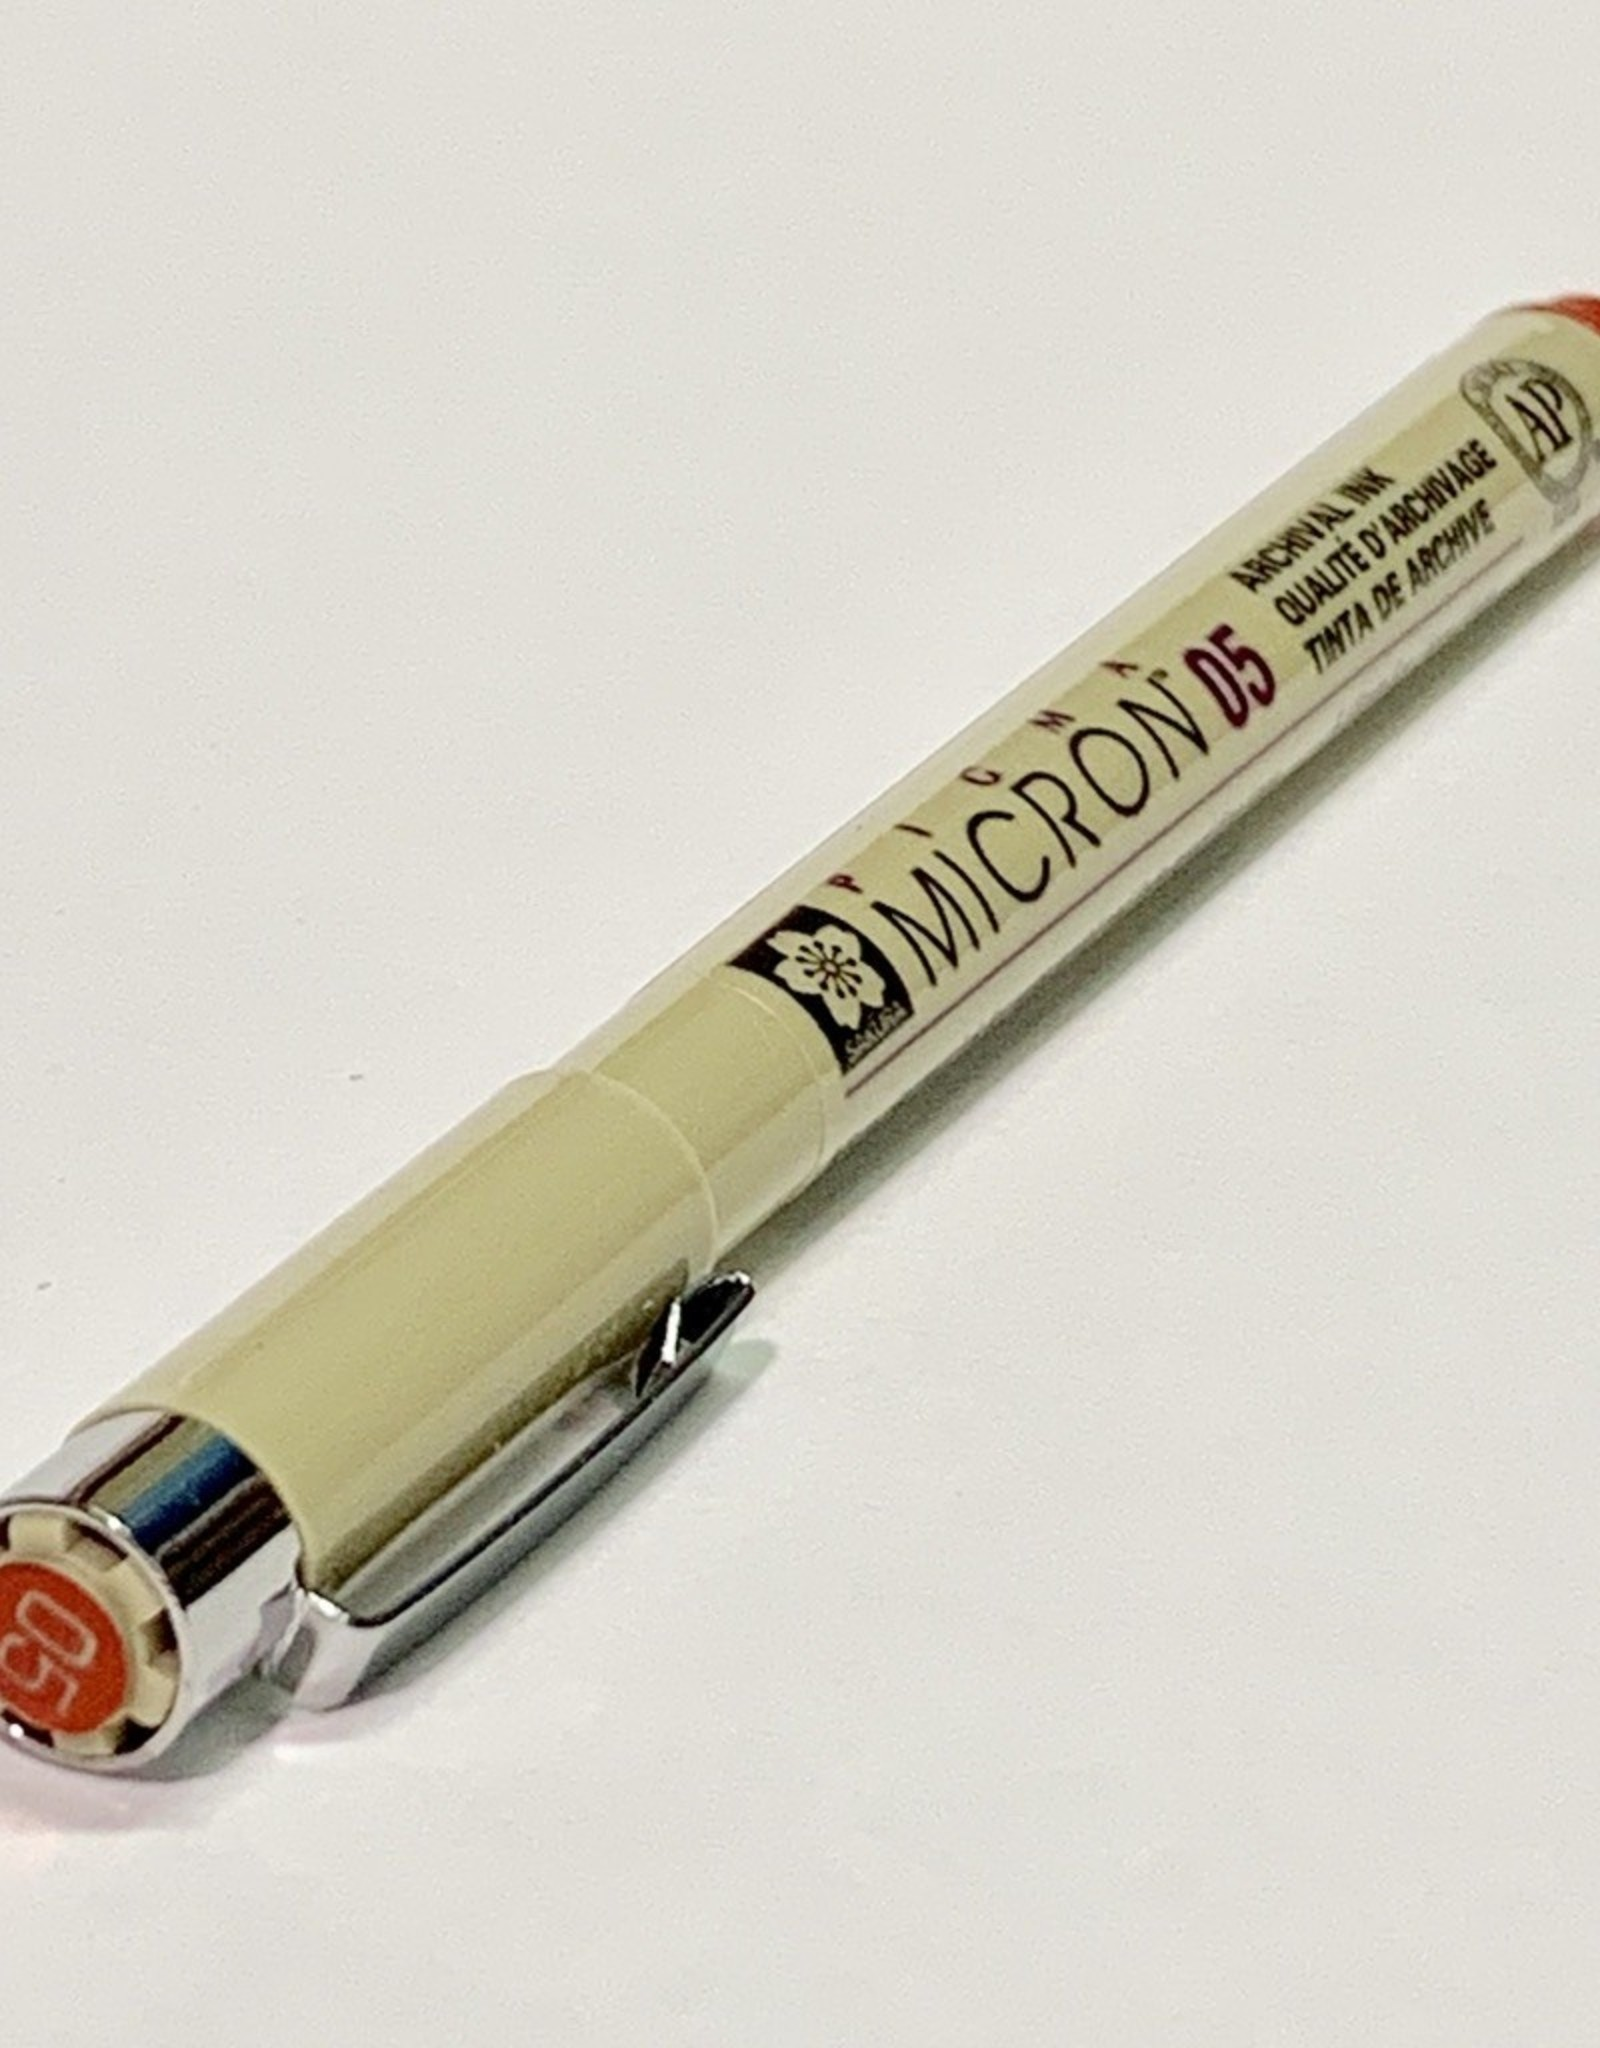 Micron Red Pen 05 .45mm